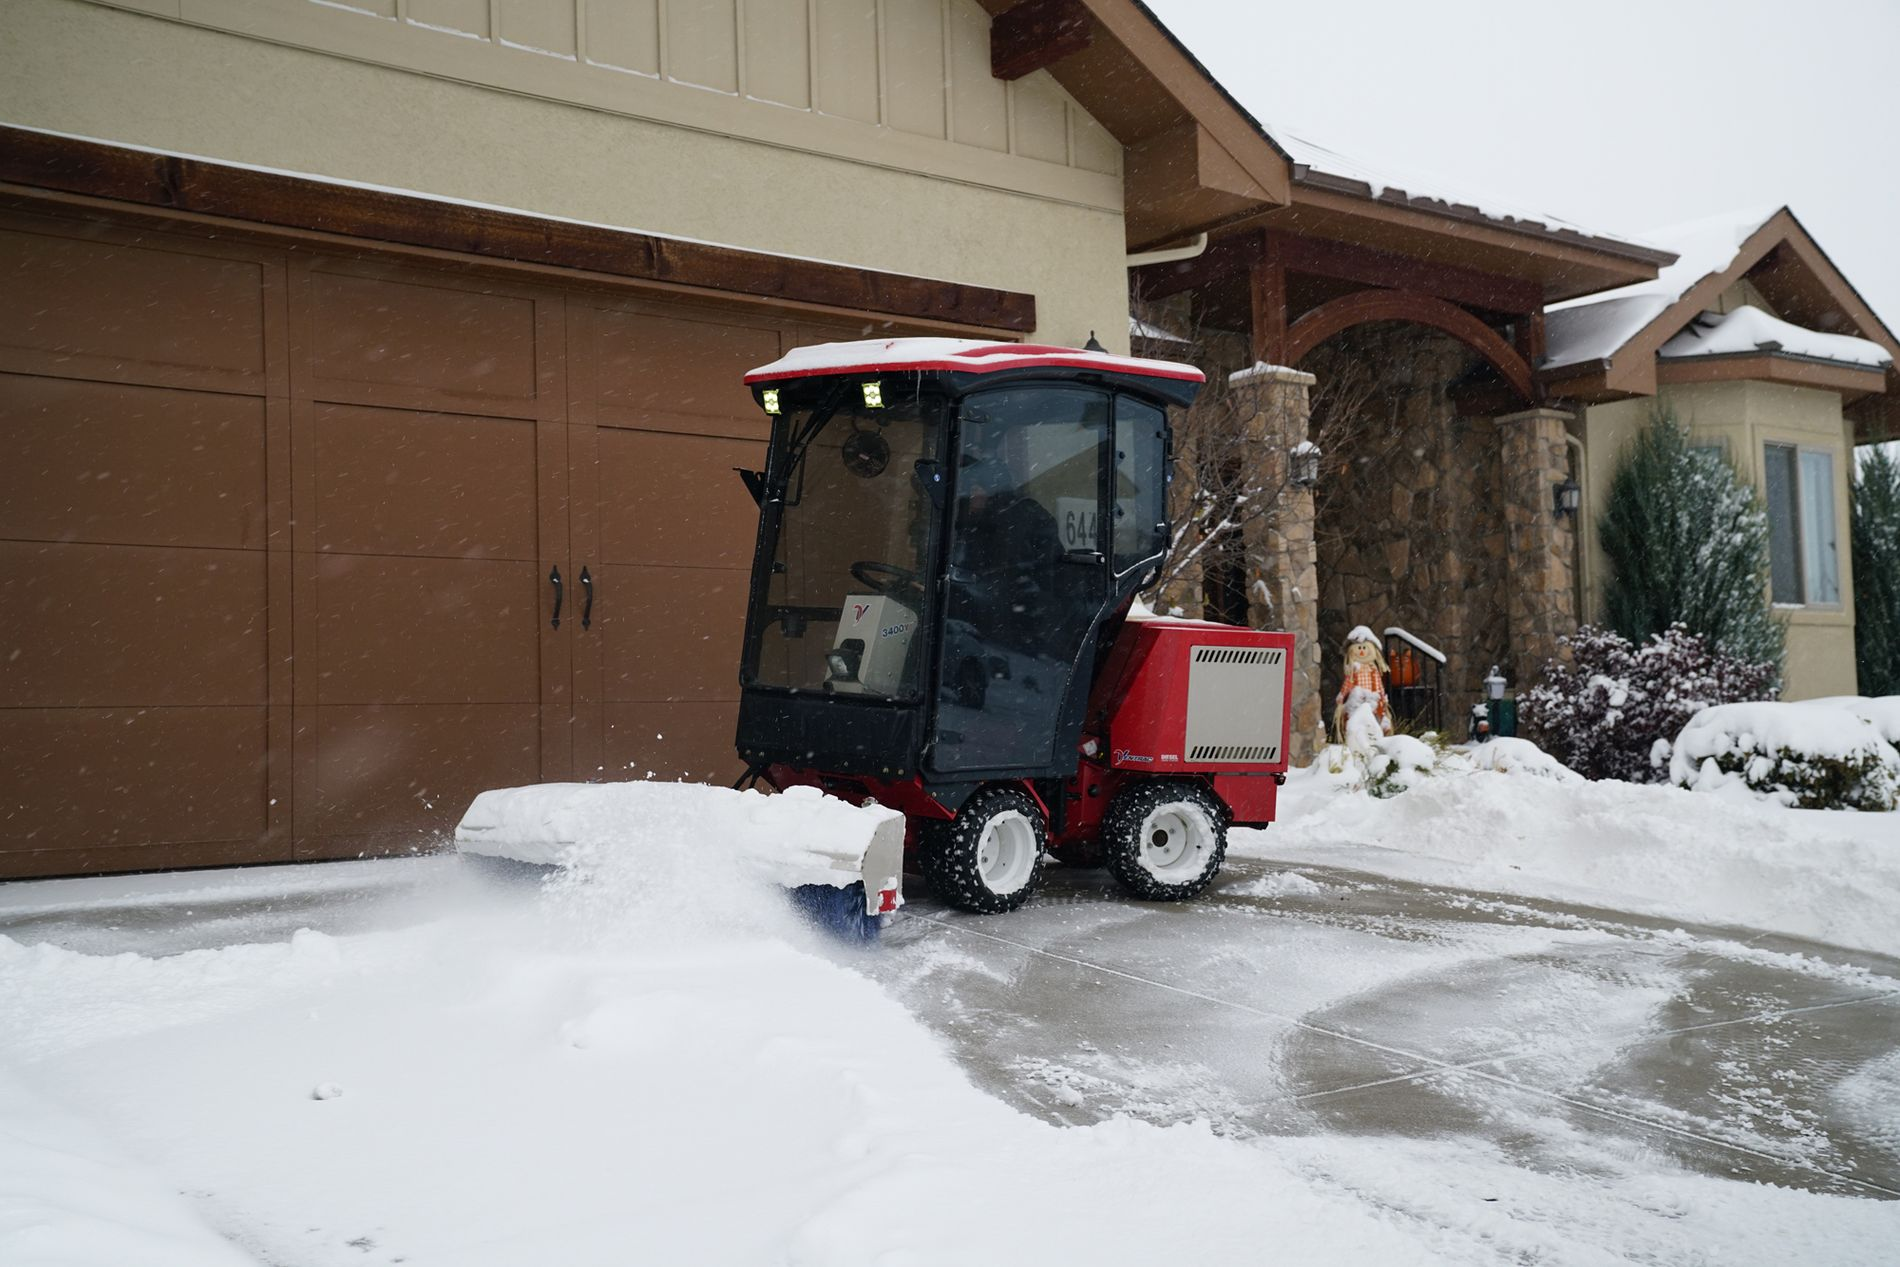 Ventrac machine with snow broom clearing snow on driveway